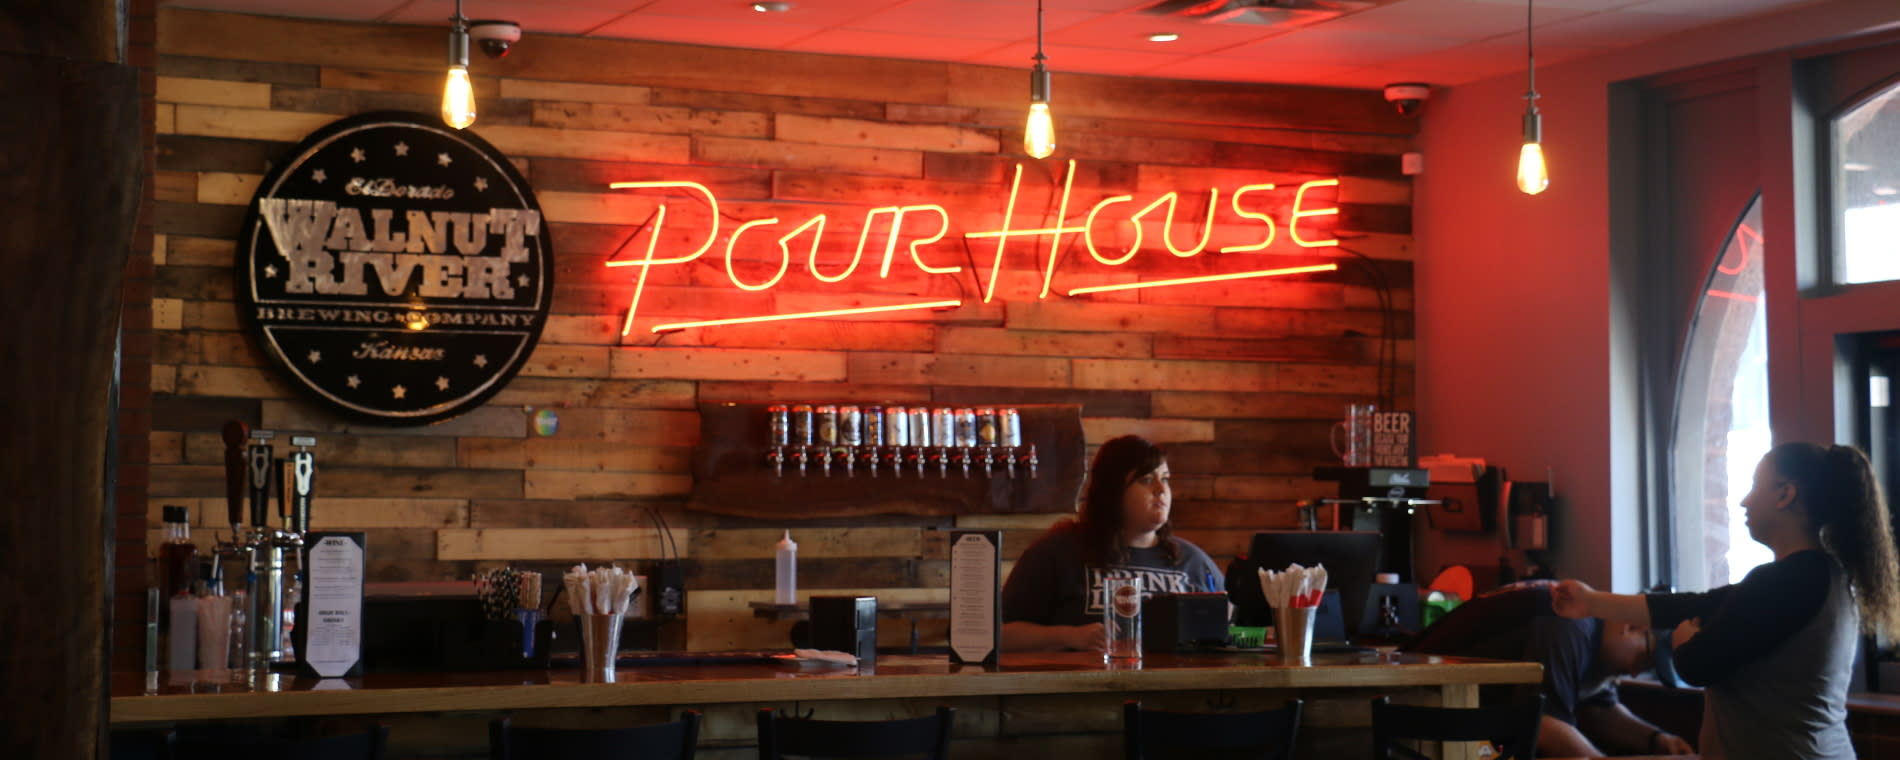 PourHouse by Walnut River Brewing